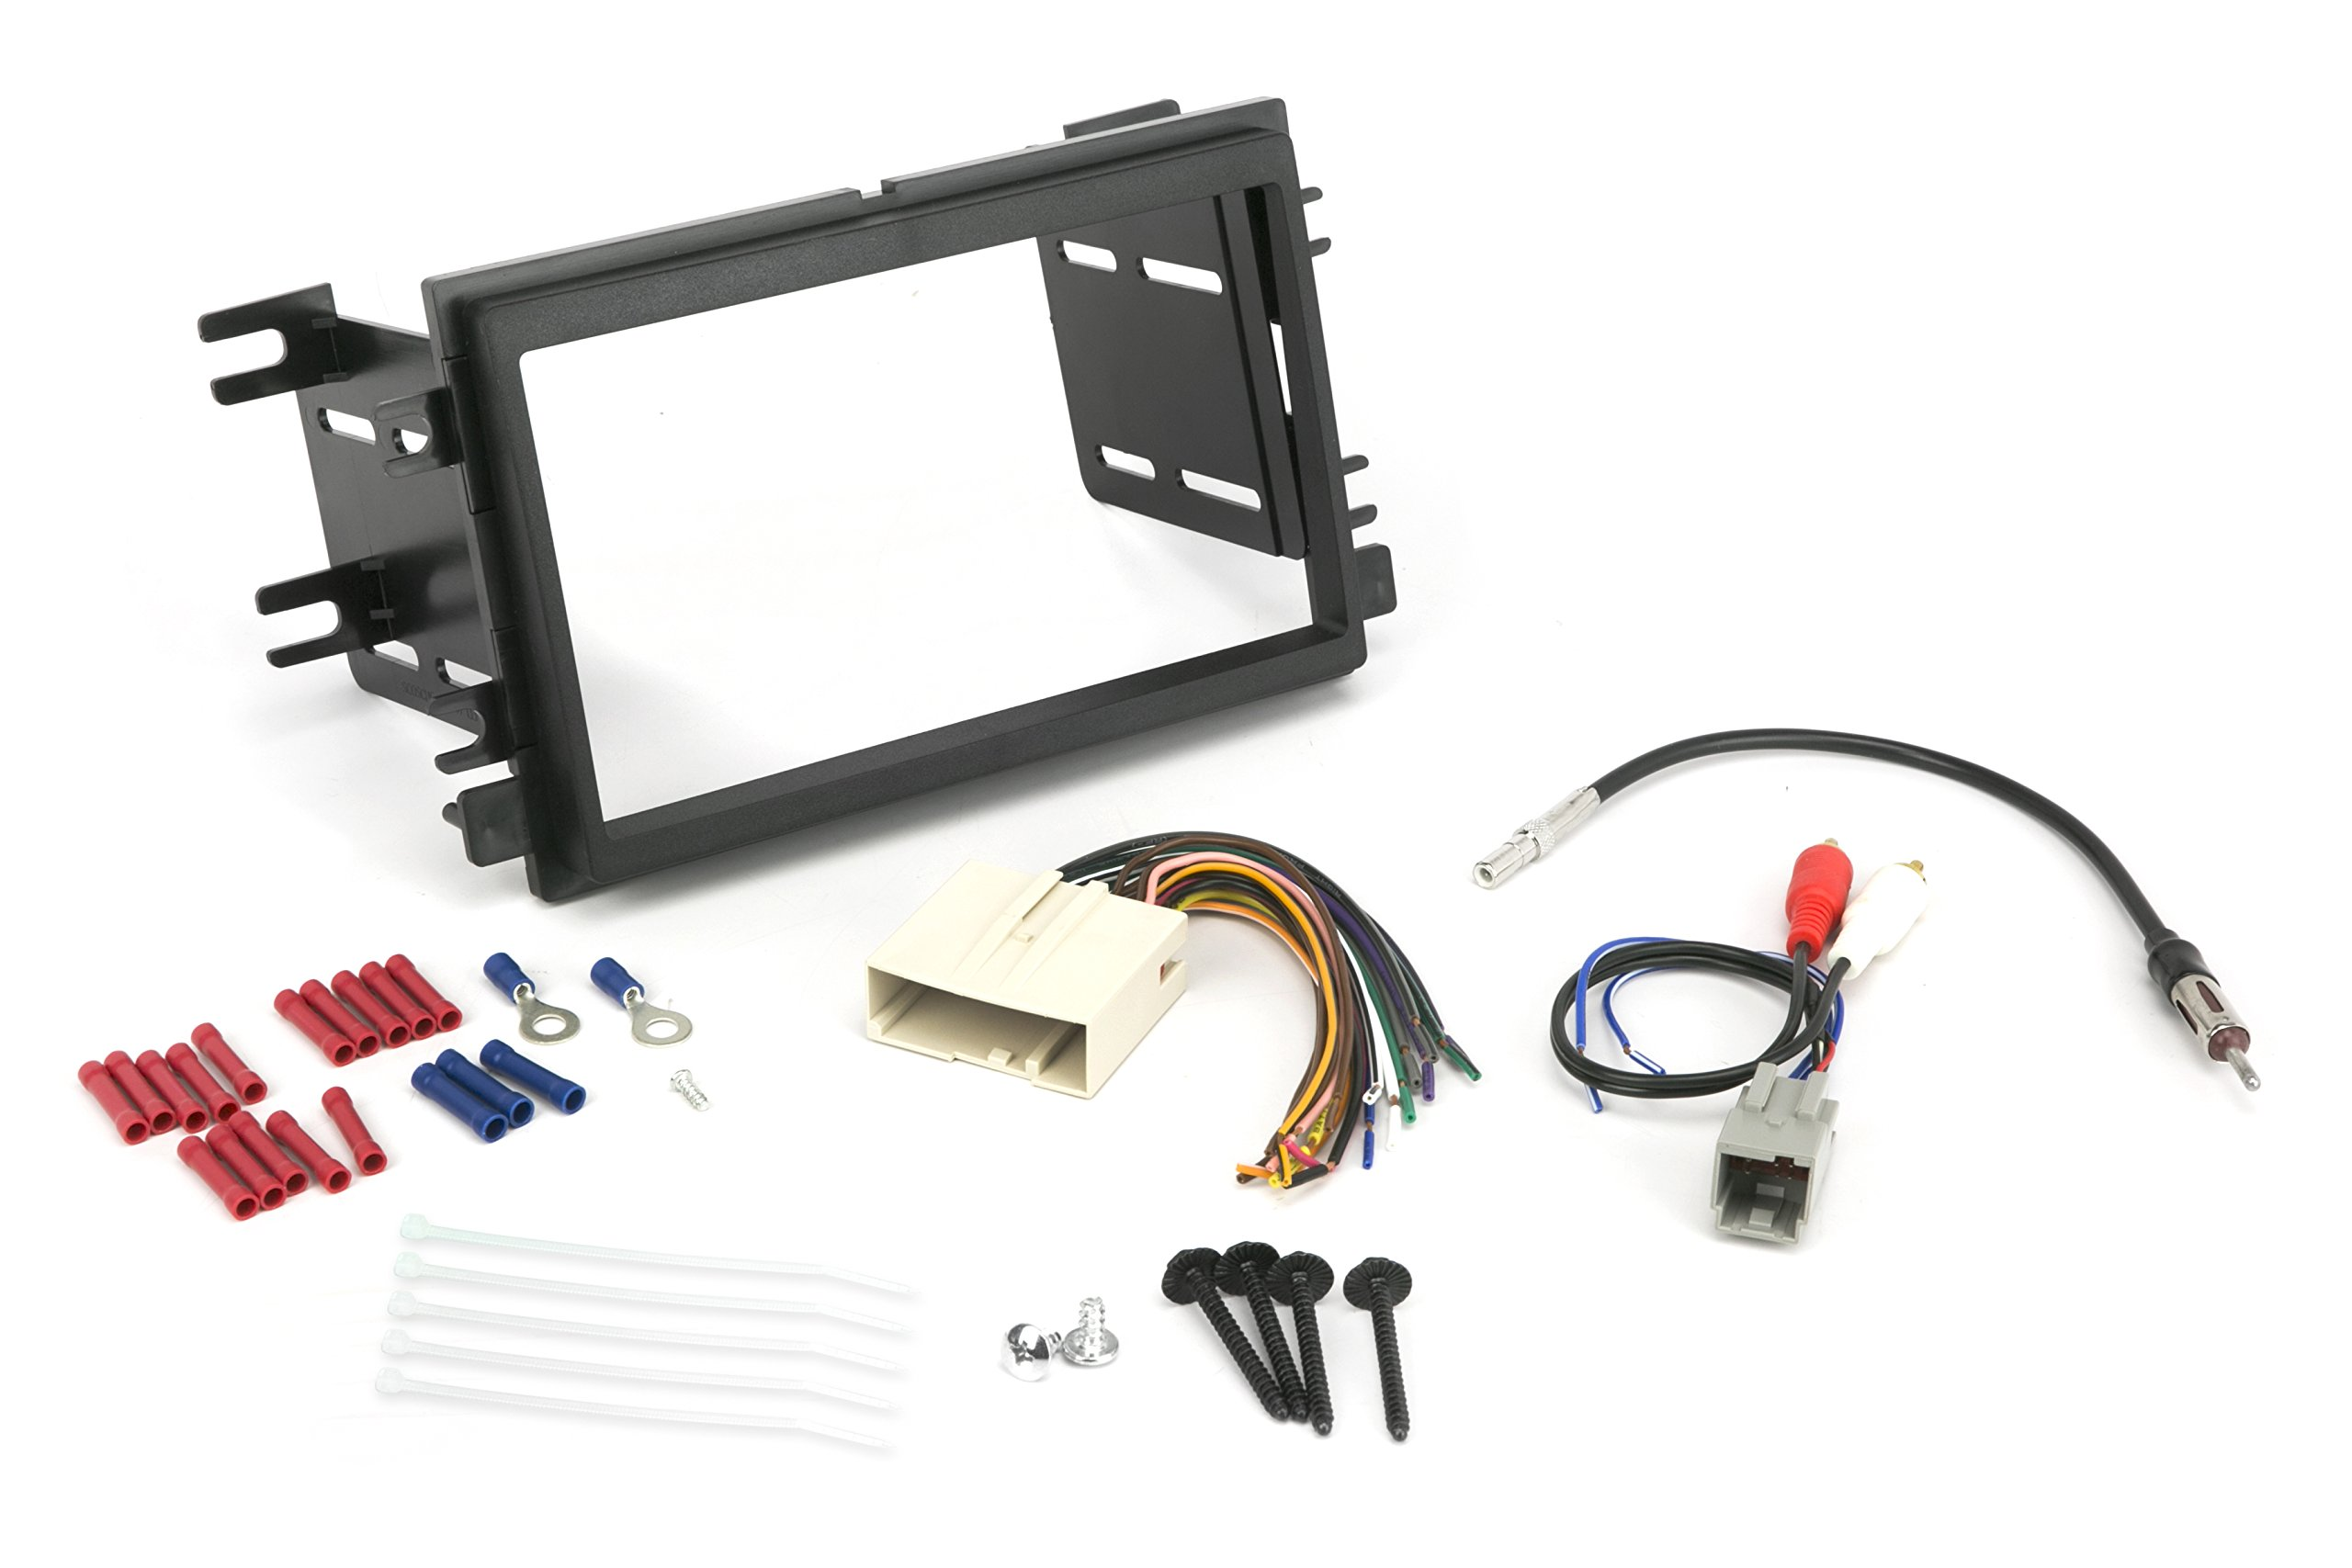 Install Centric ICFD6BN Ford/Lincoln/Mercury 2004-08 Double DIN, Premium Sound Complete Installation Solution for Car Stereos by Scosche